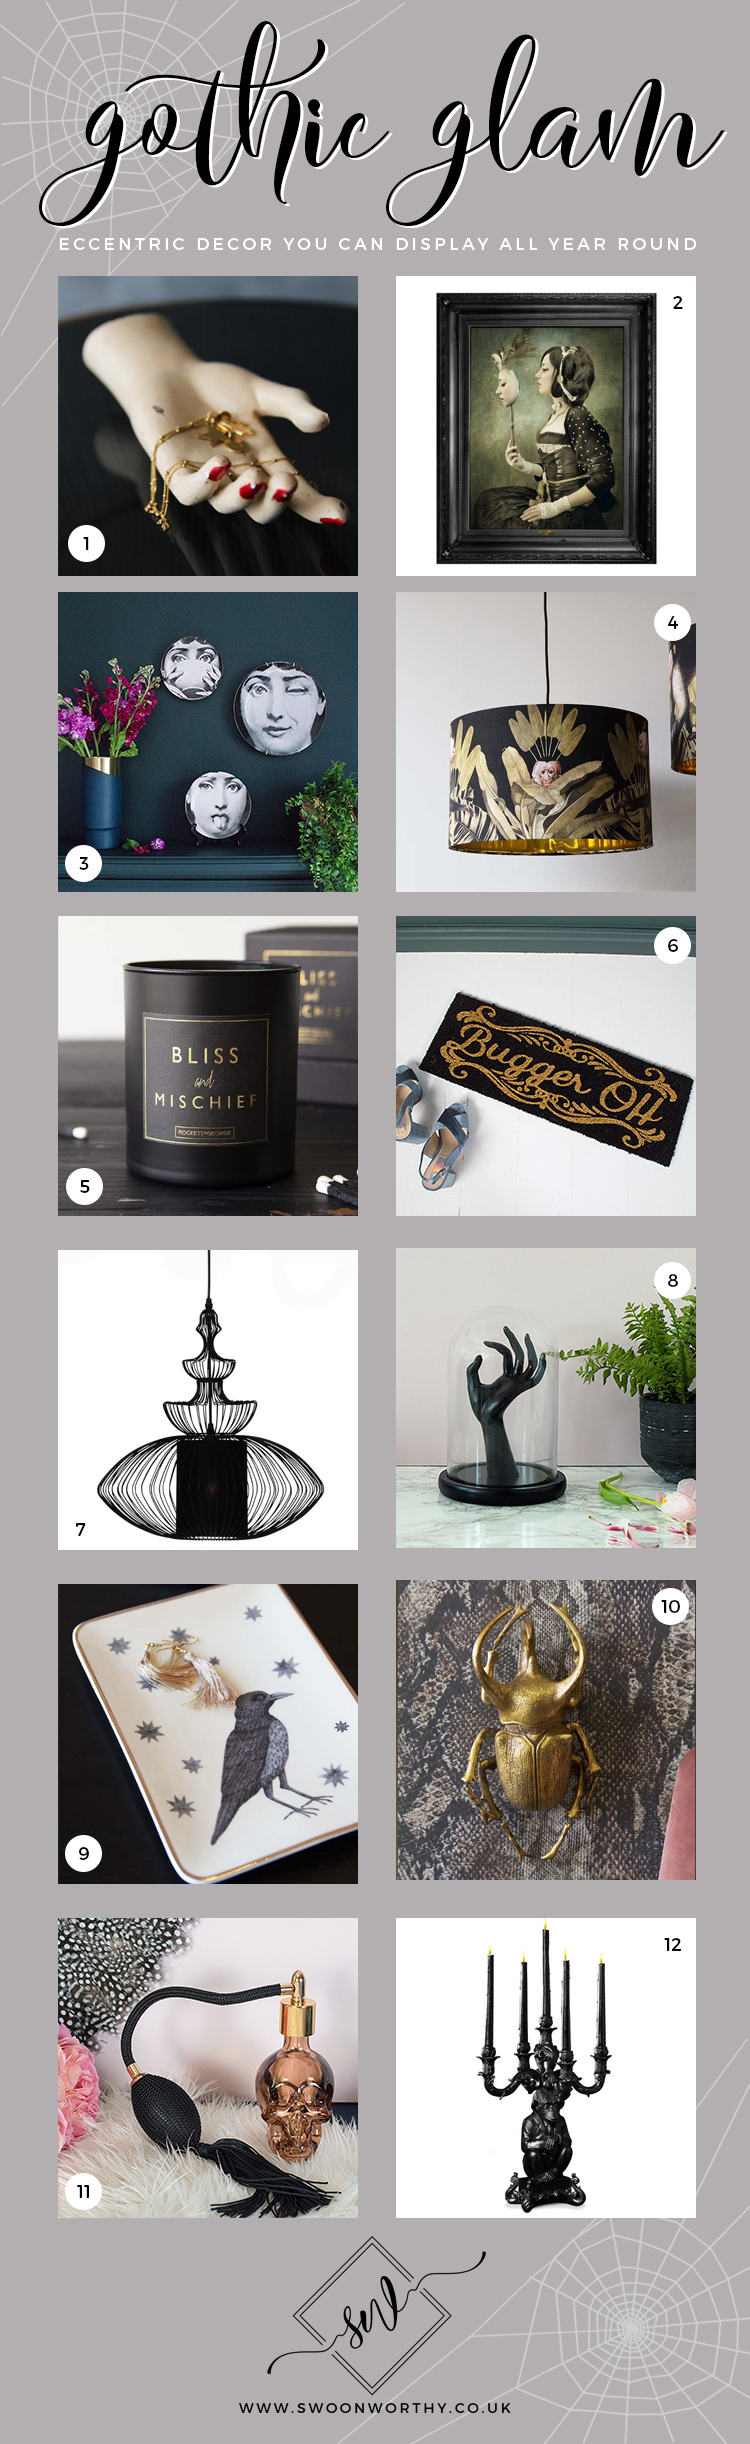 Gothic Glam Decor for Halloween or All Year Long